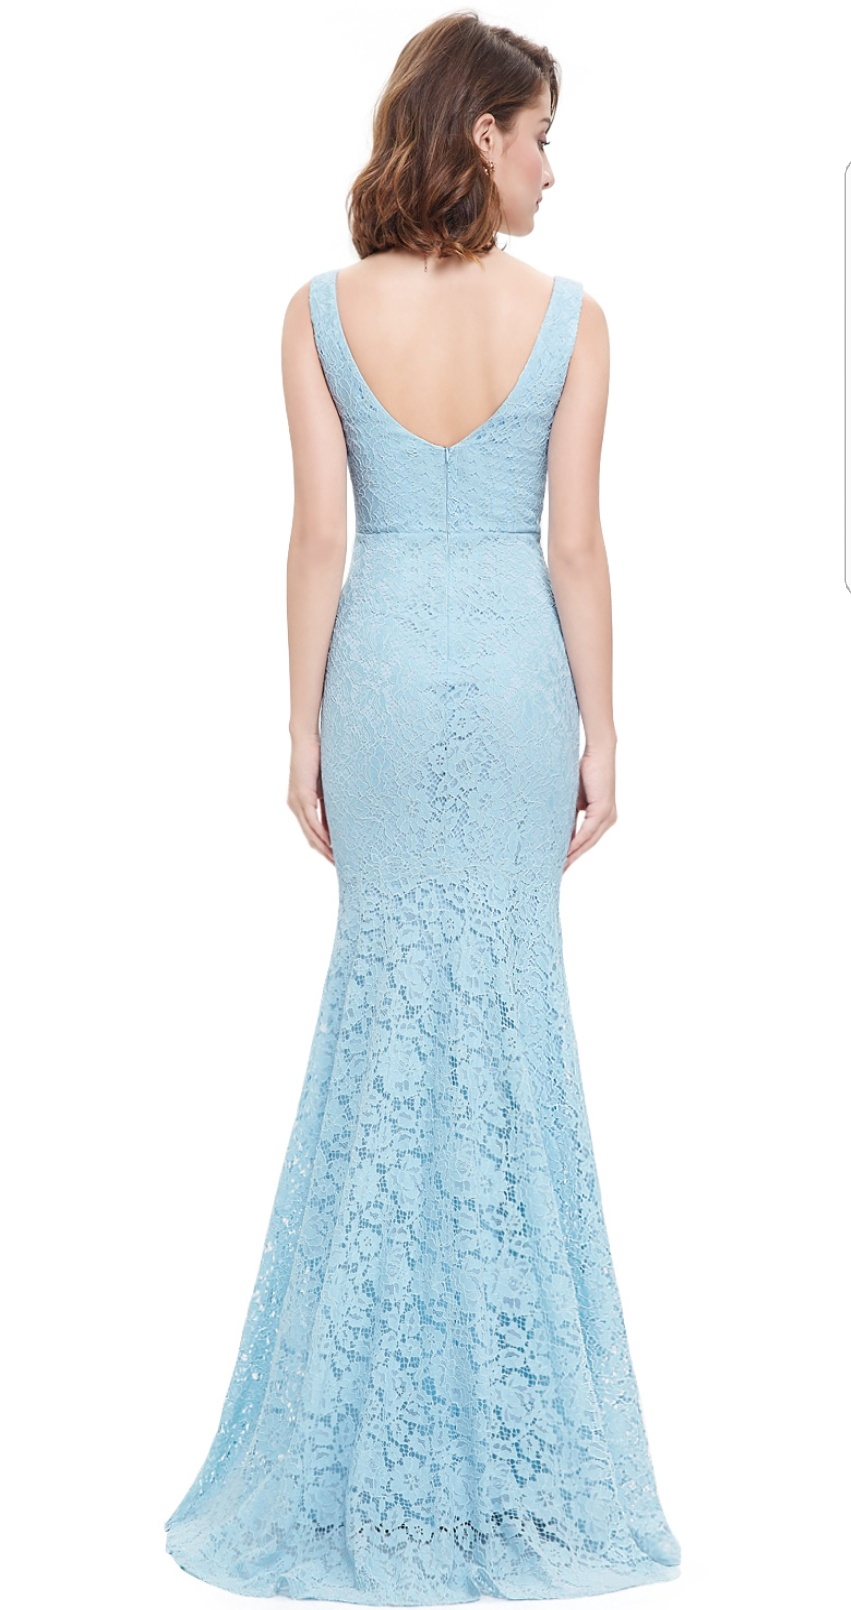 1463a18928d Floor Length Gown - Baby Blue Lace Mermaid Maxi Dress